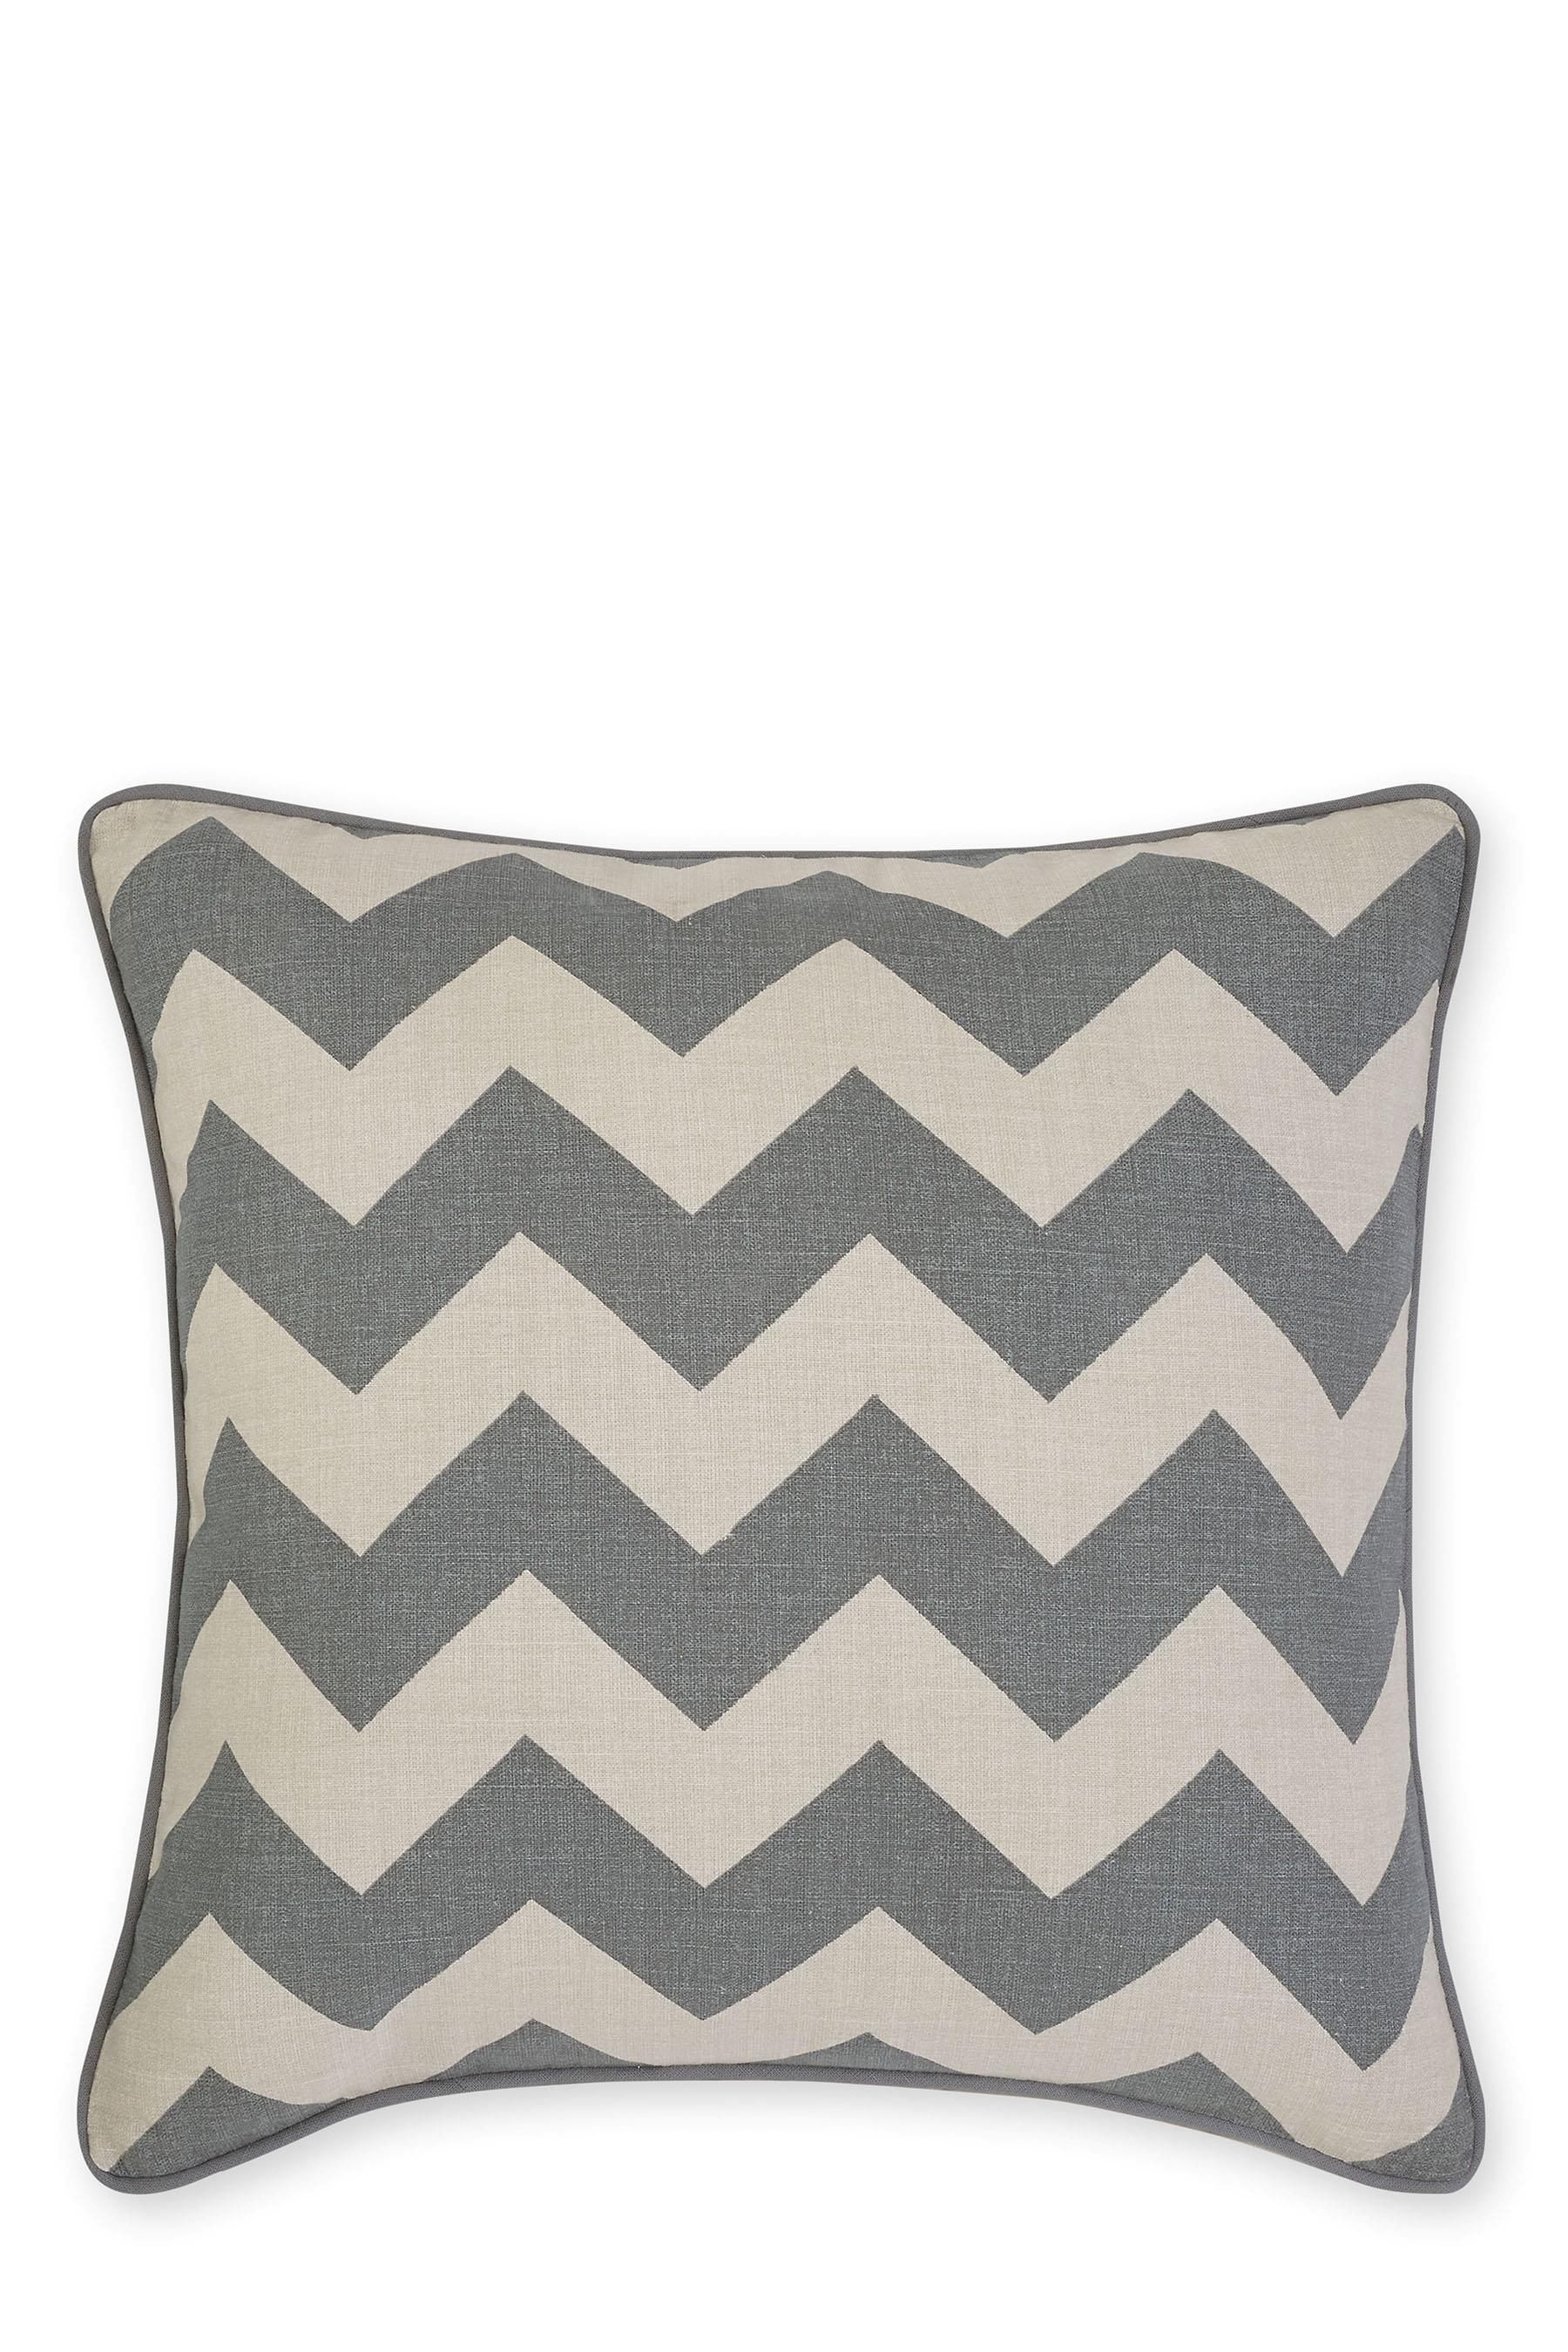 Buy Chevron Print Cushion From The Next Uk Online Shop House